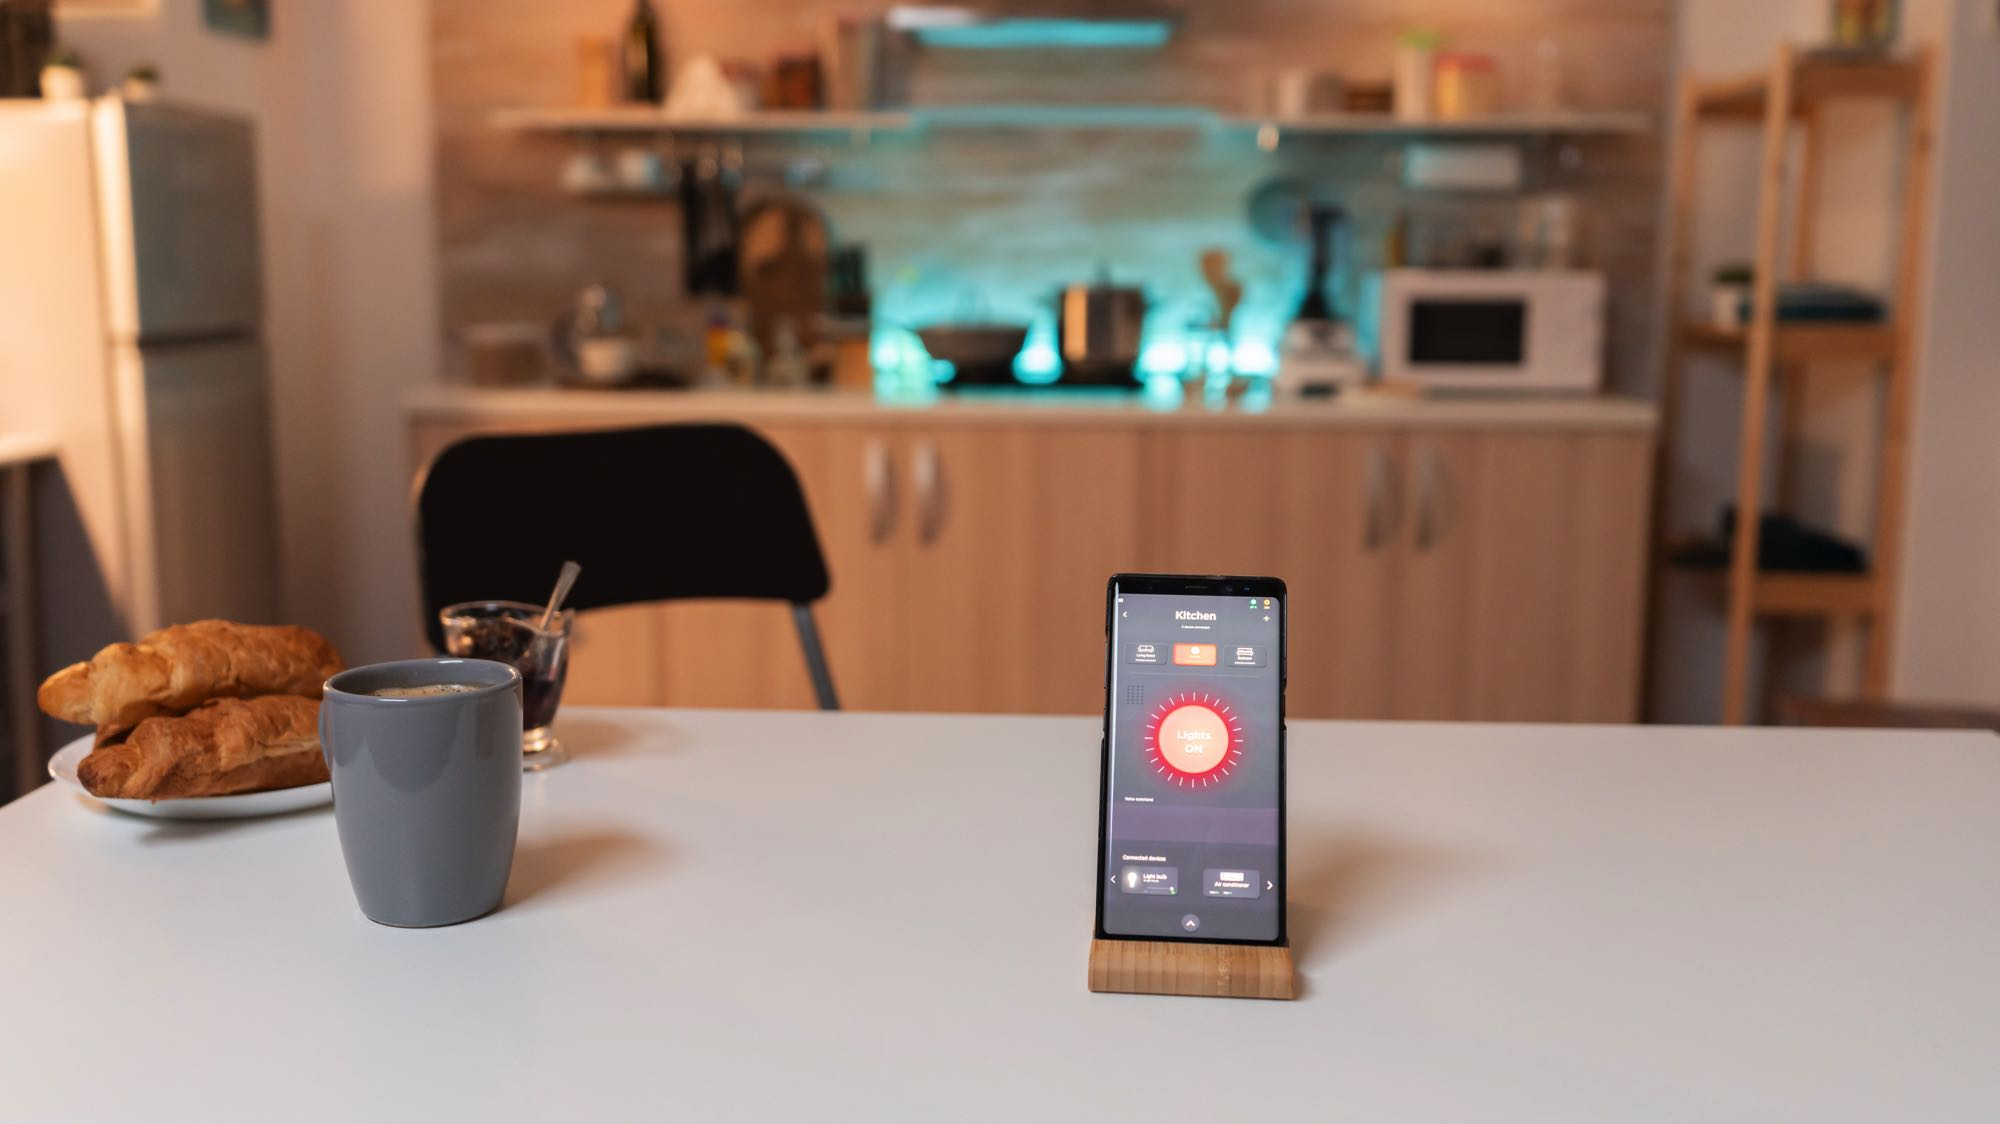 smartphone-with-smart-home-application-to-turn-on-G4G8H5K.jpg